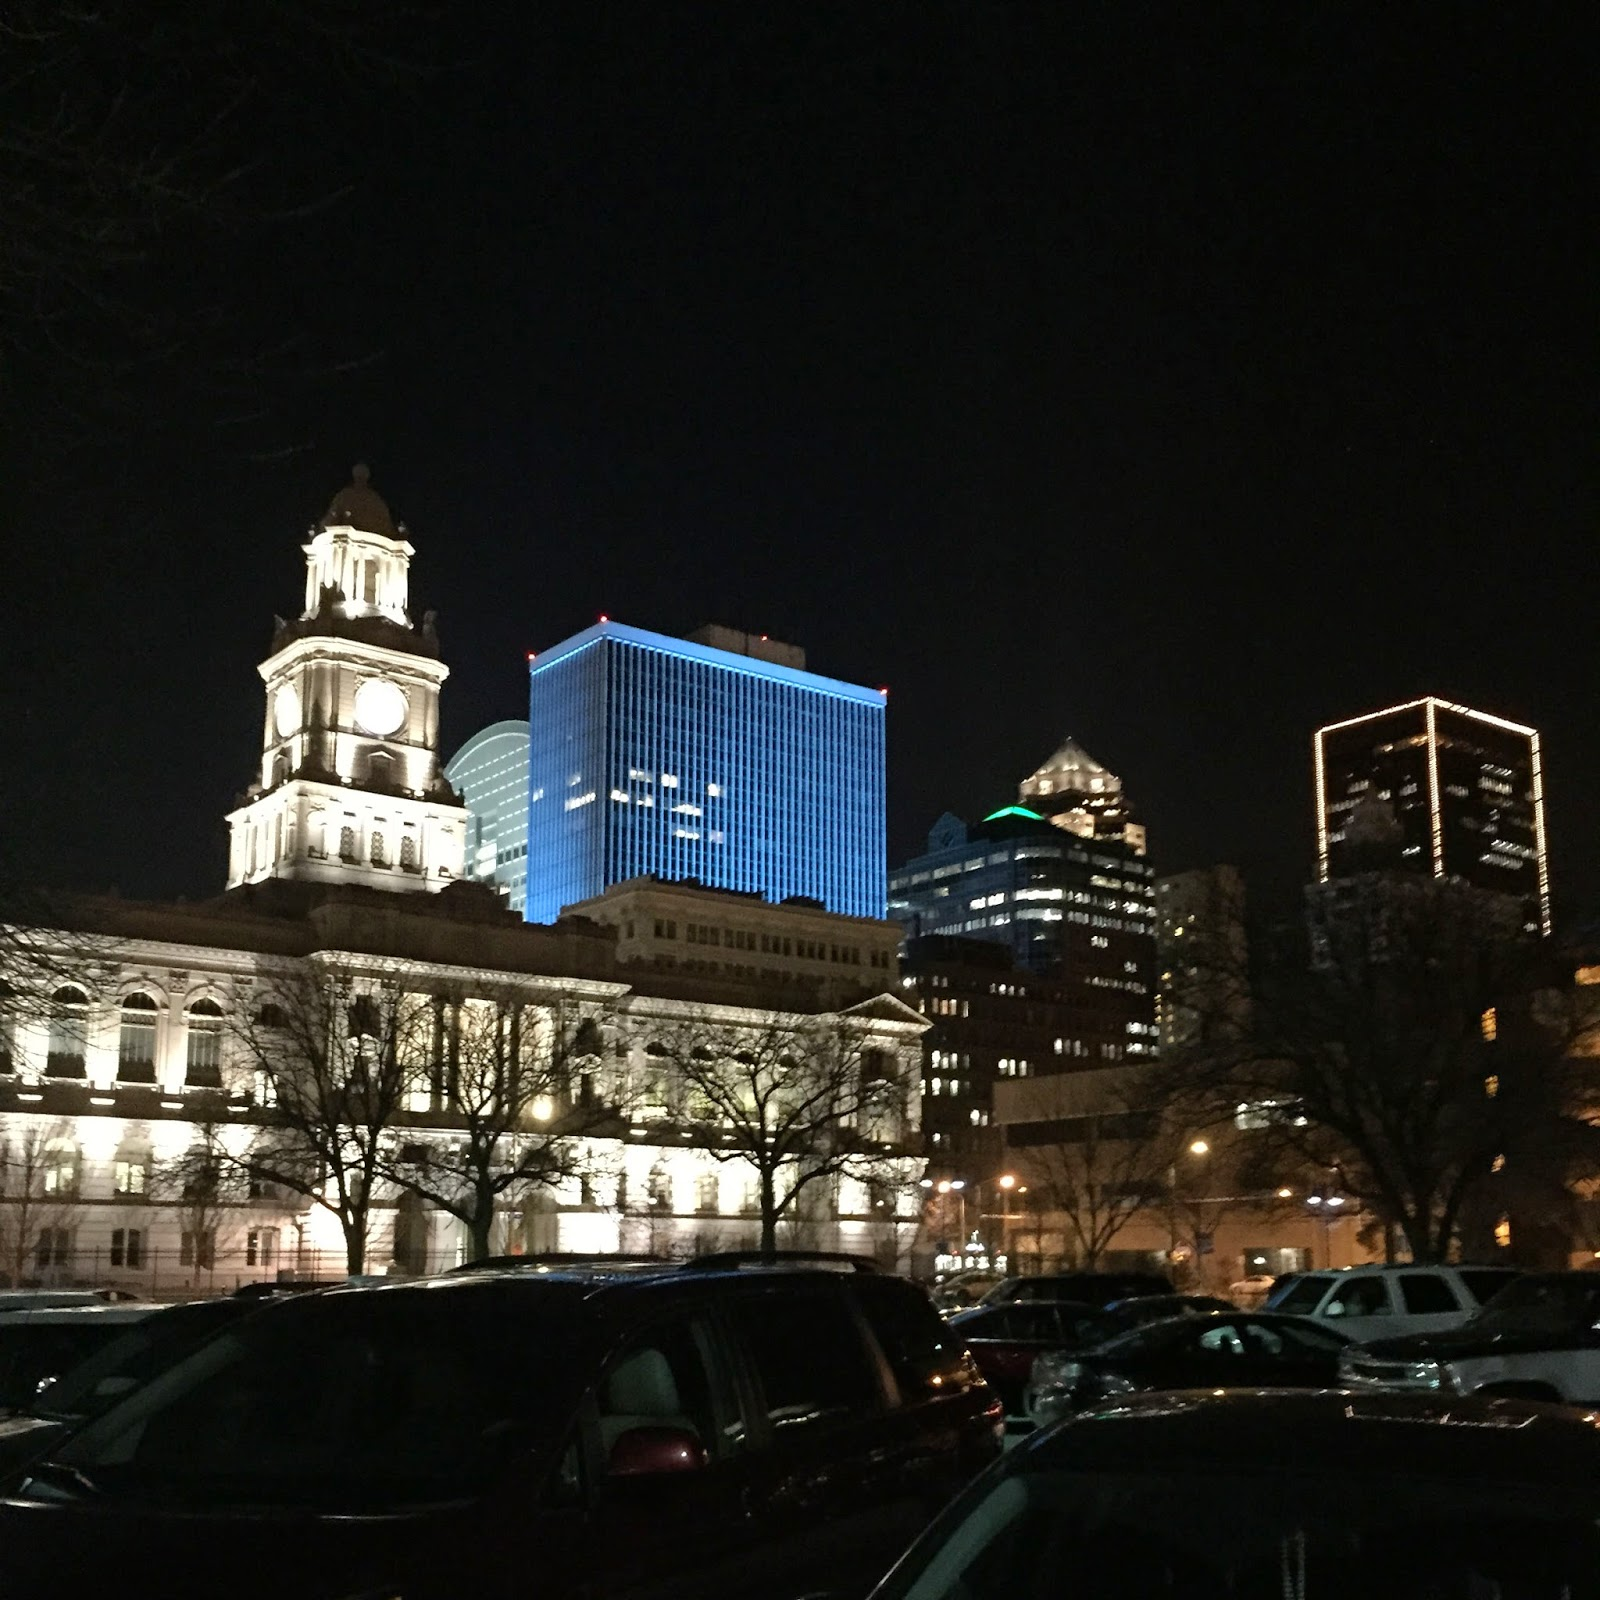 Downtown Des Moines lights up at night